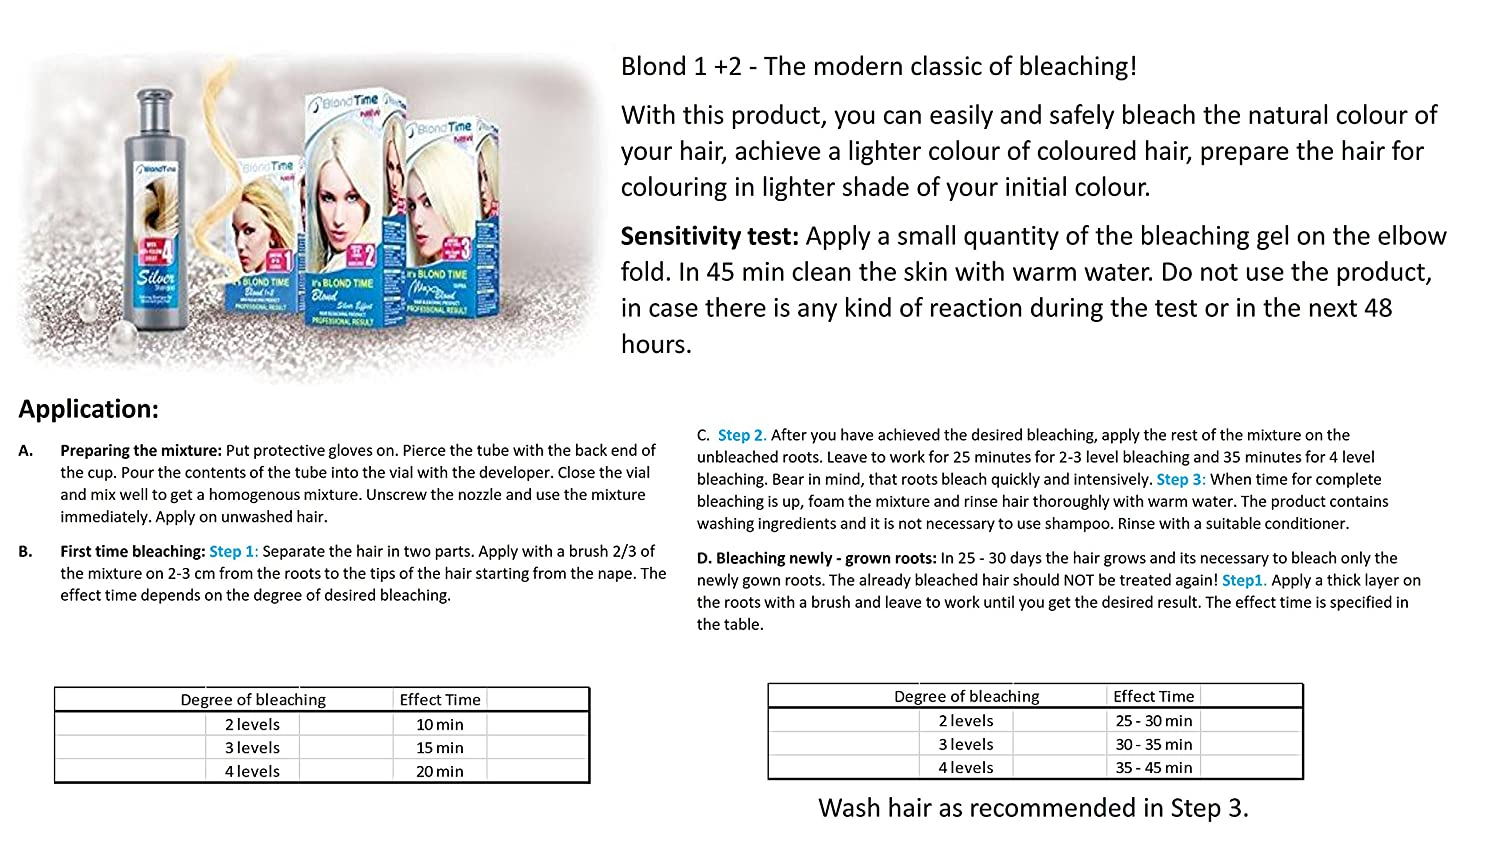 Blond Time - Hair Bleaching Product Blond 1+2 Rosa Impex